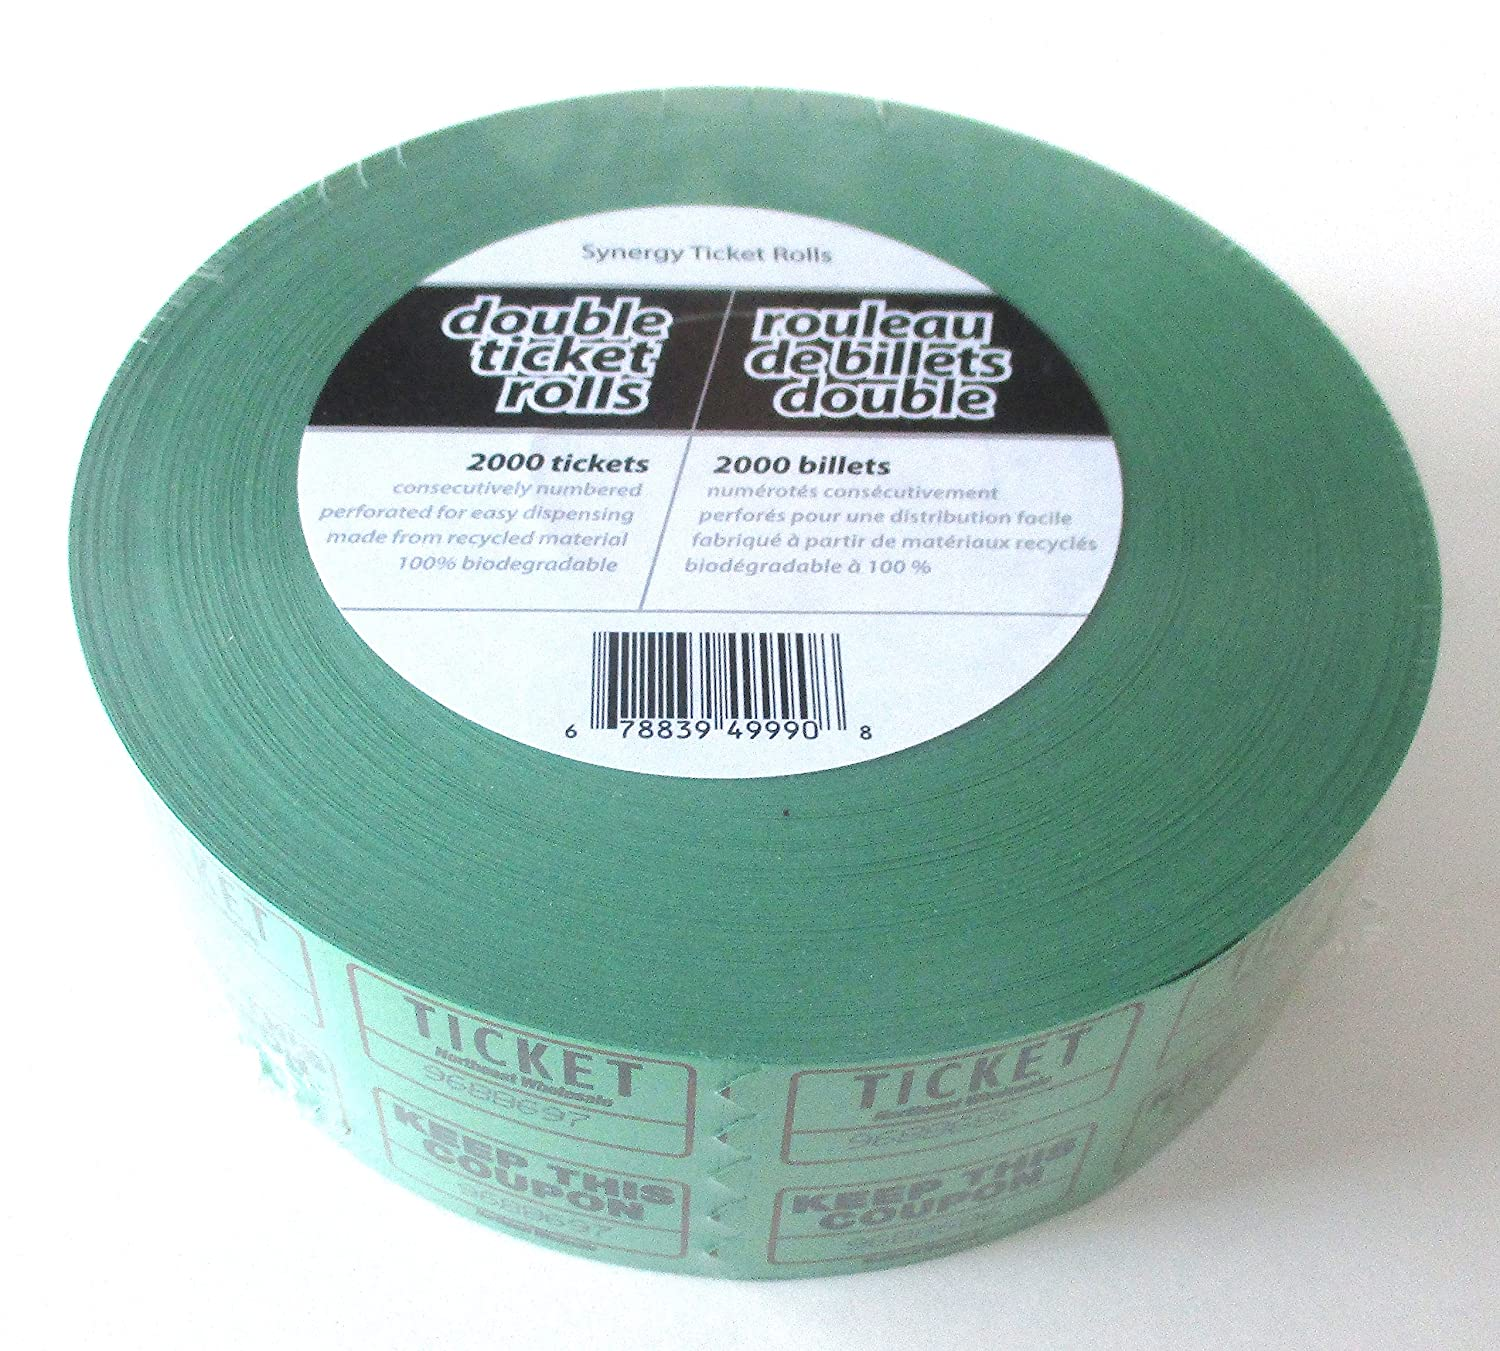 Admit One Tickets With Coupon 2000 Tickets Green Colour Canada Ticket Rolls